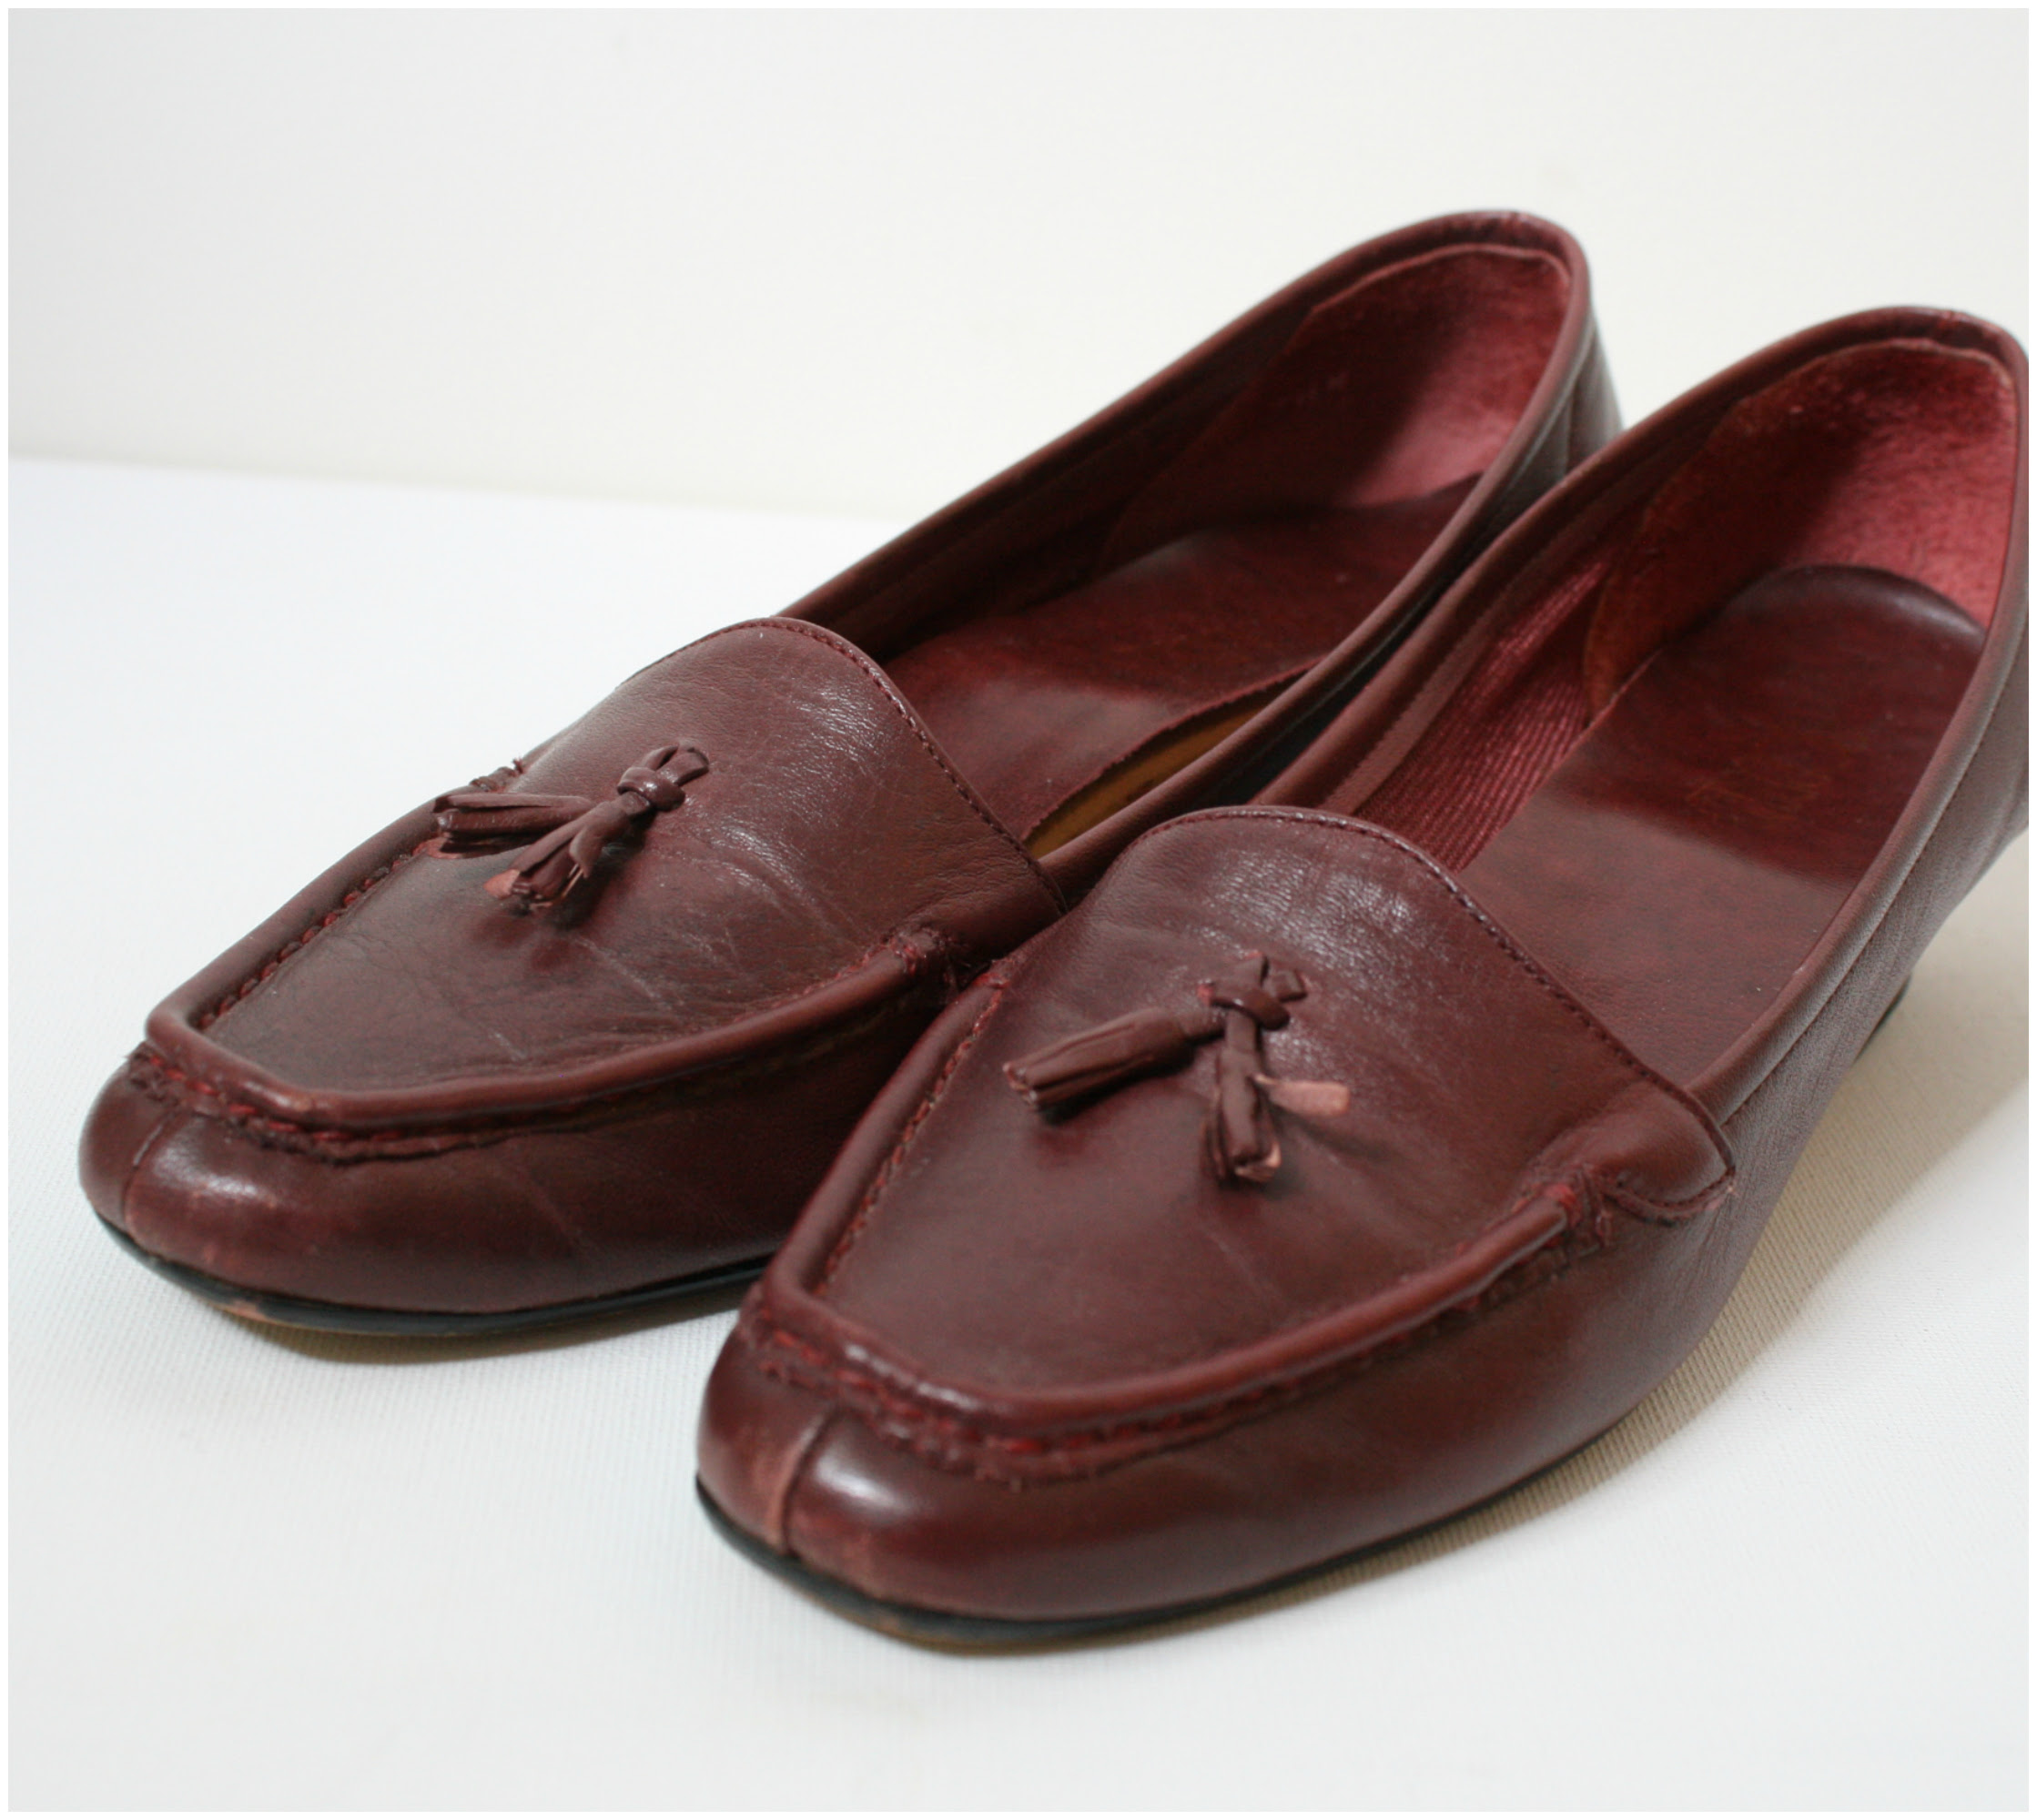 vintage loafers platinumandrust.com